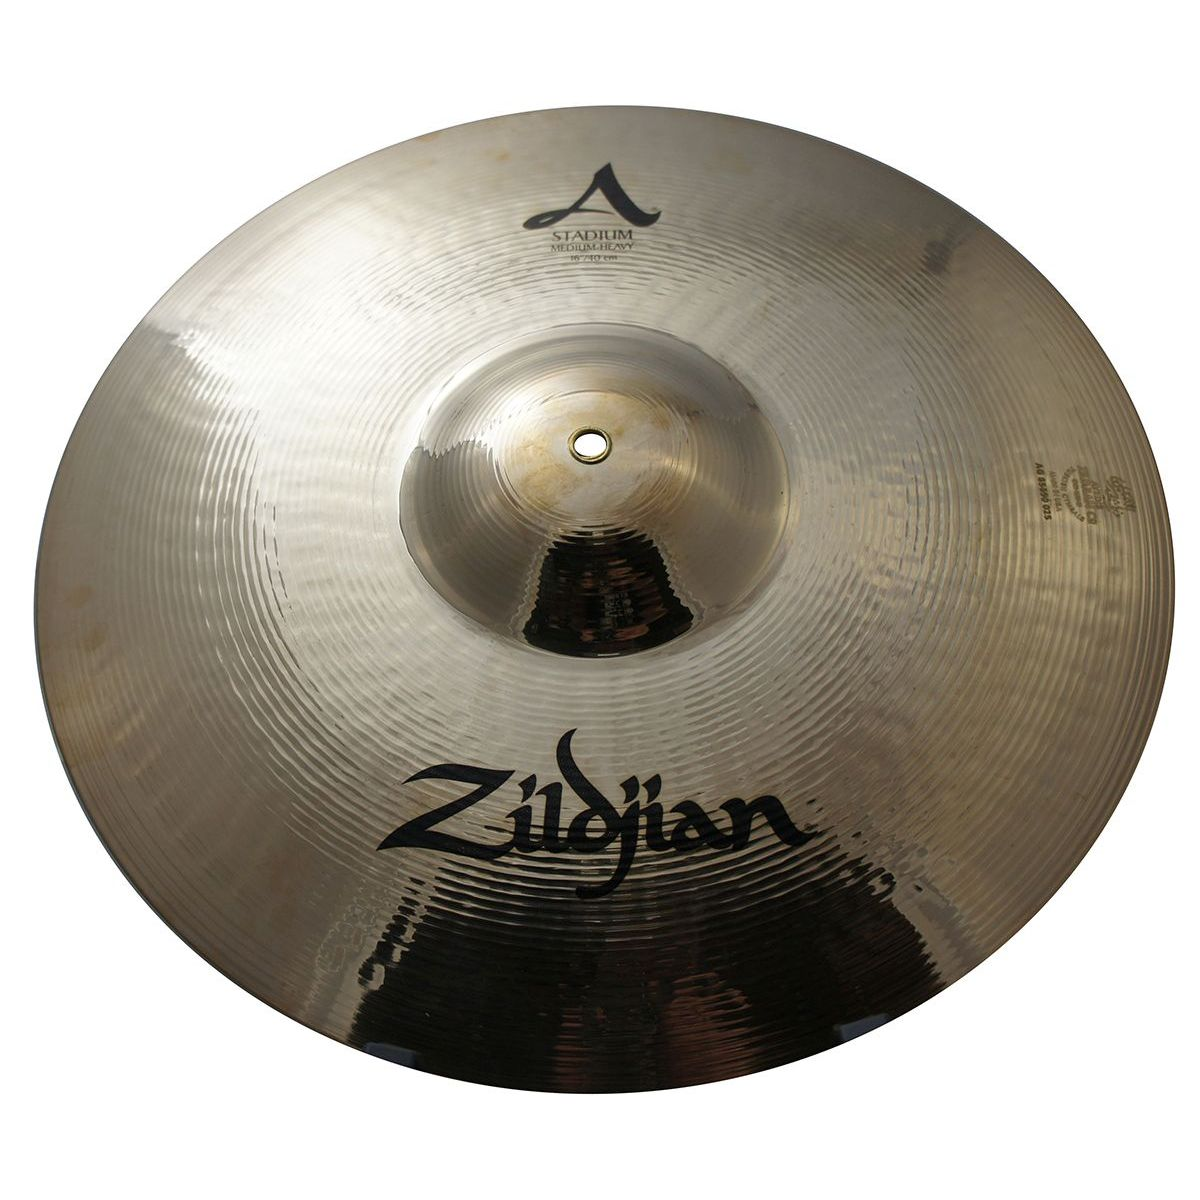 """Zildjian A0487 16"""" Stadium Series Medium Heavy Pair Orchestral Cymbals with Small Bell Size"""